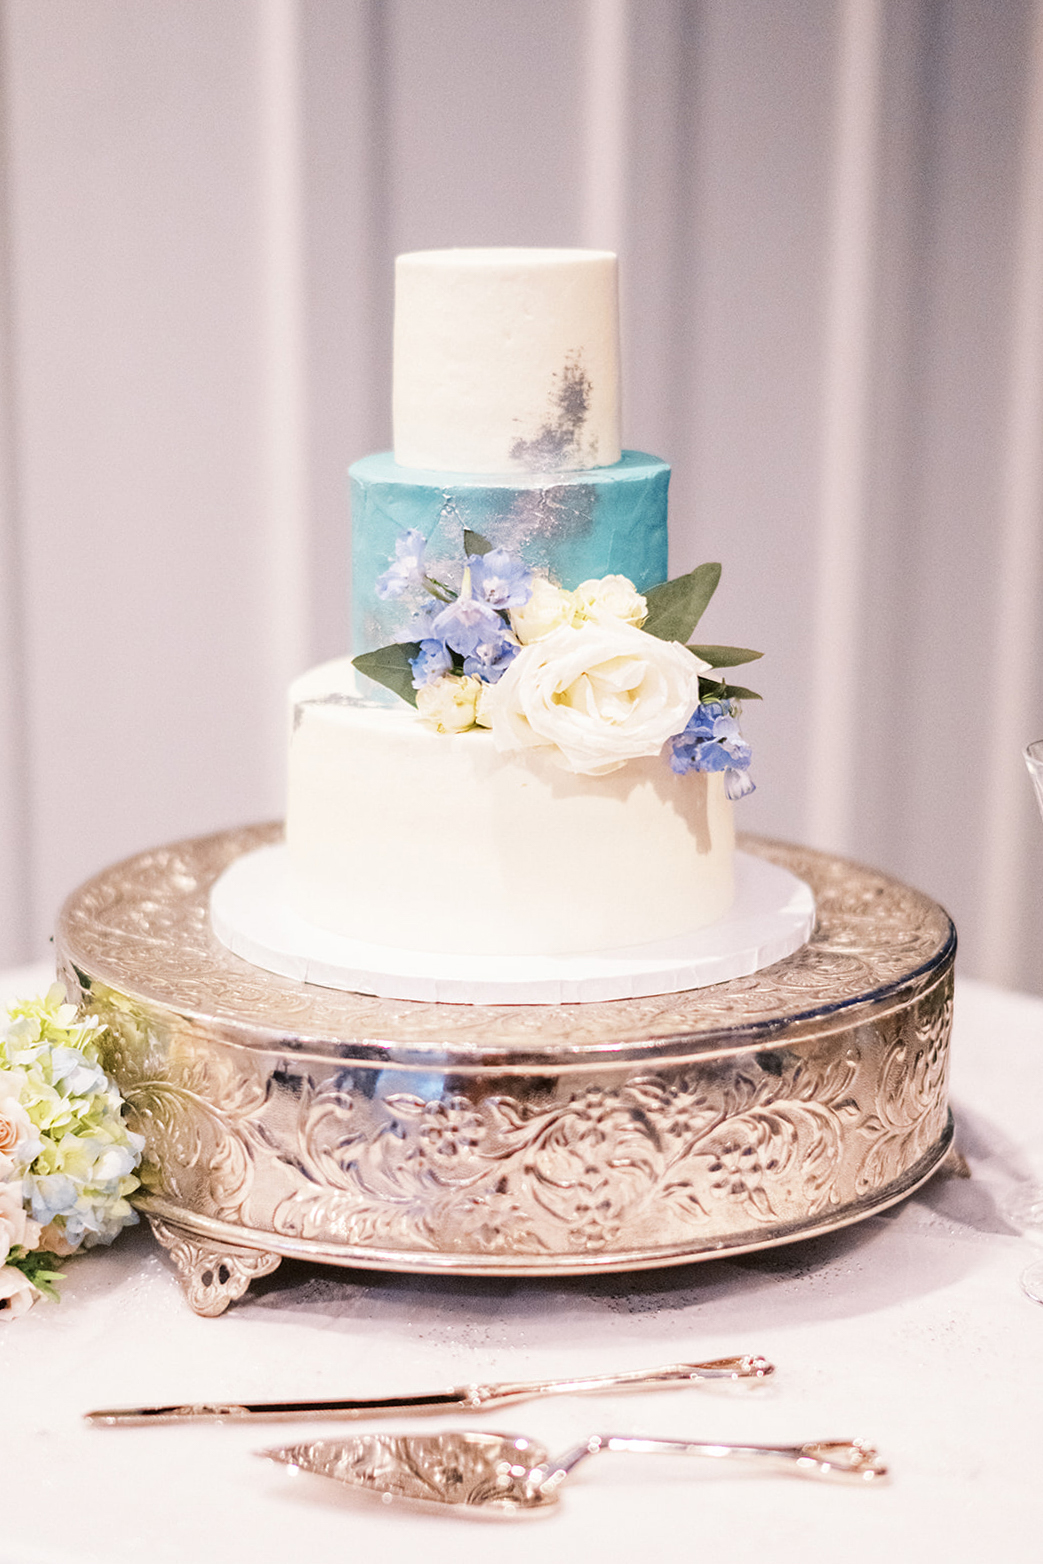 white and blue wedding cake with flowers